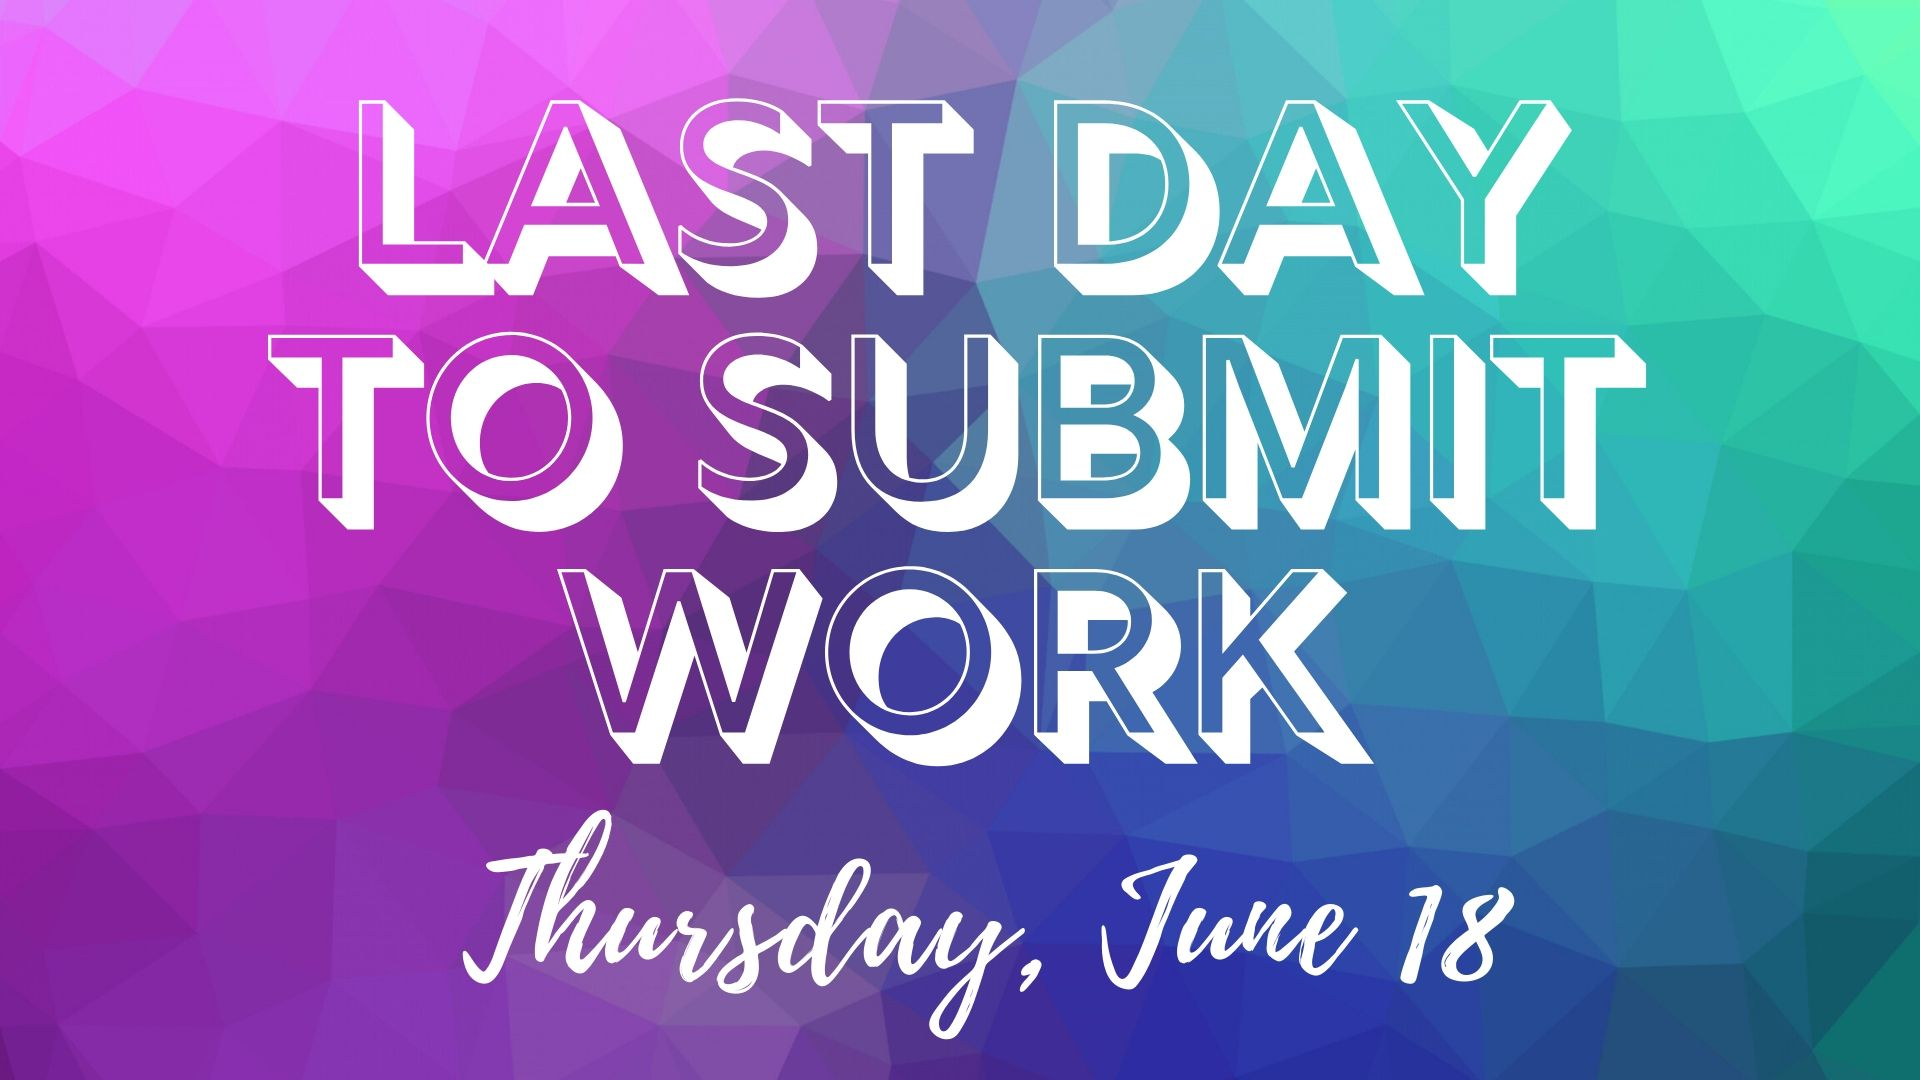 Last day to submit work